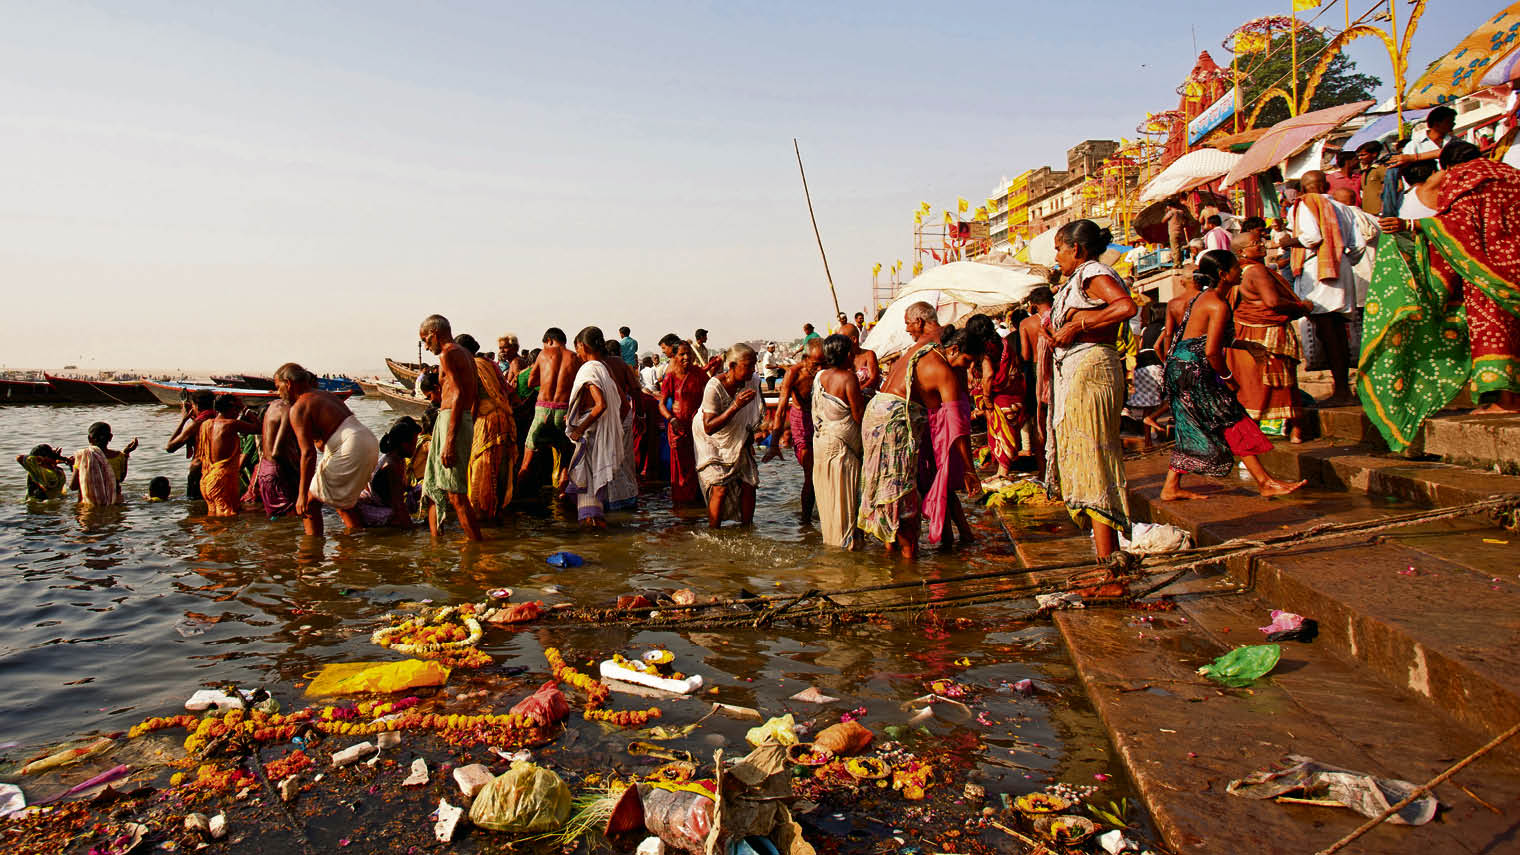 People washing in the River Ganges